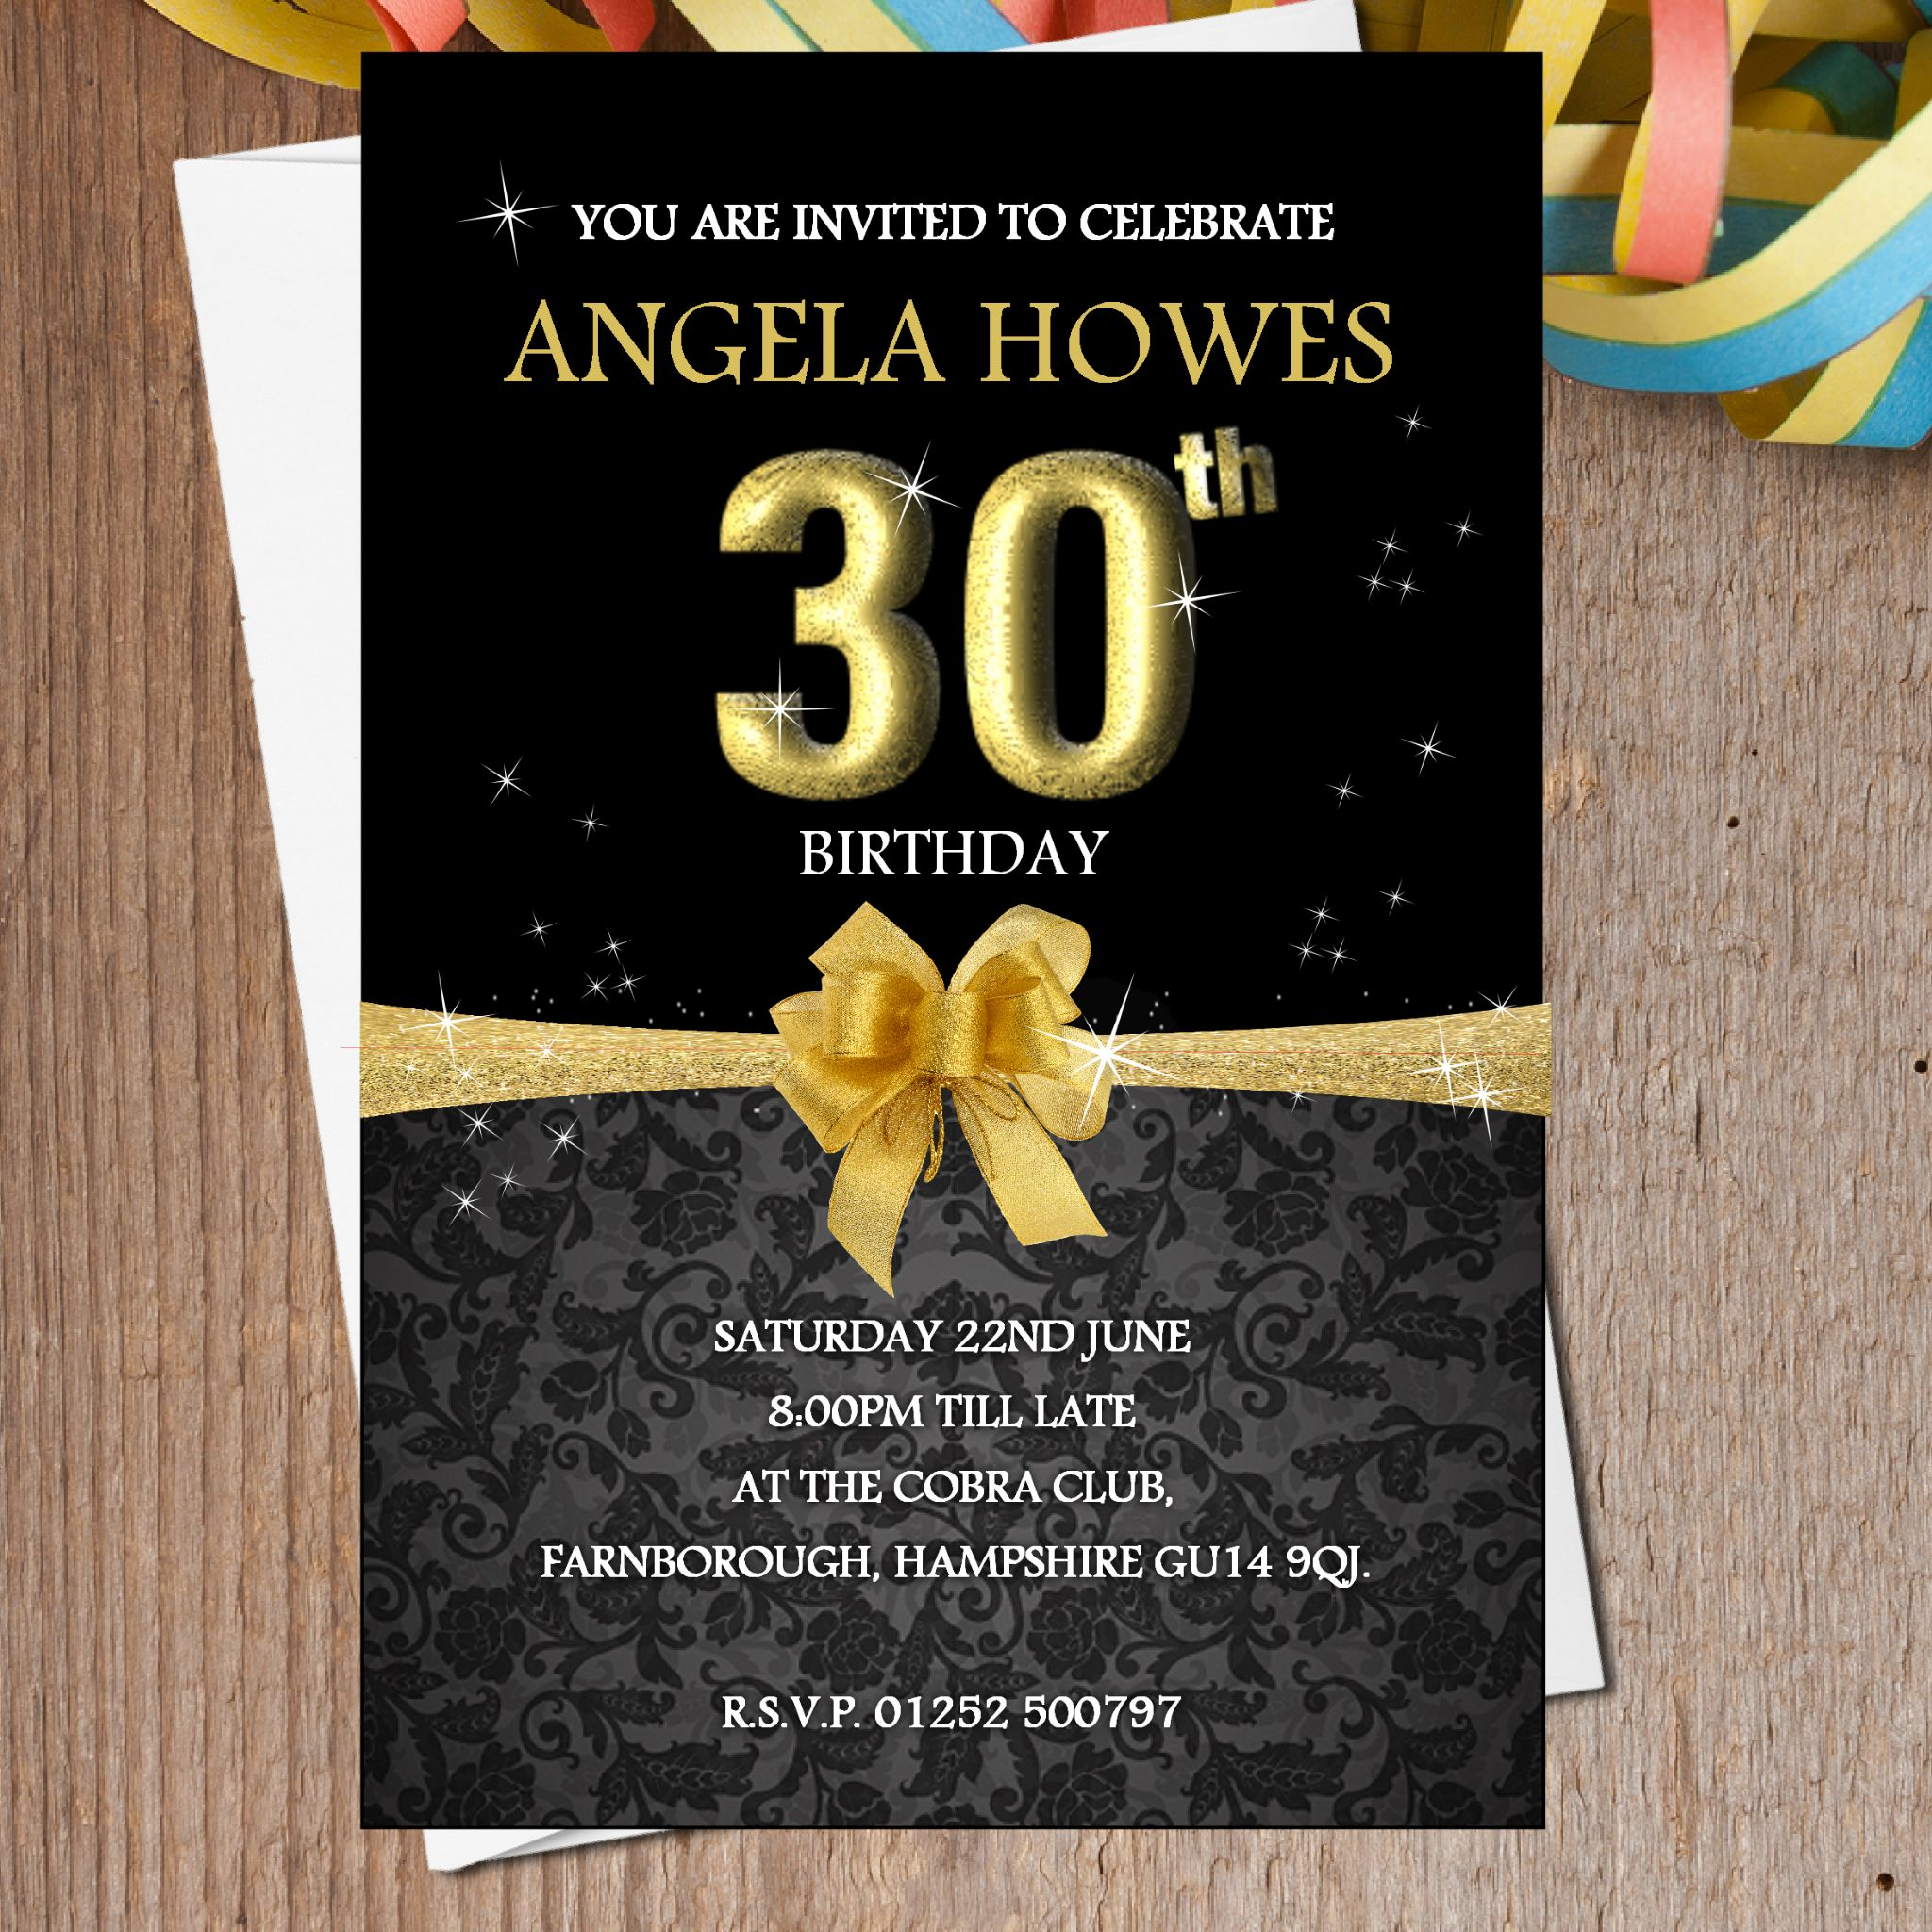 10 Personalised Black & Gold Birthday Party Invitations N193